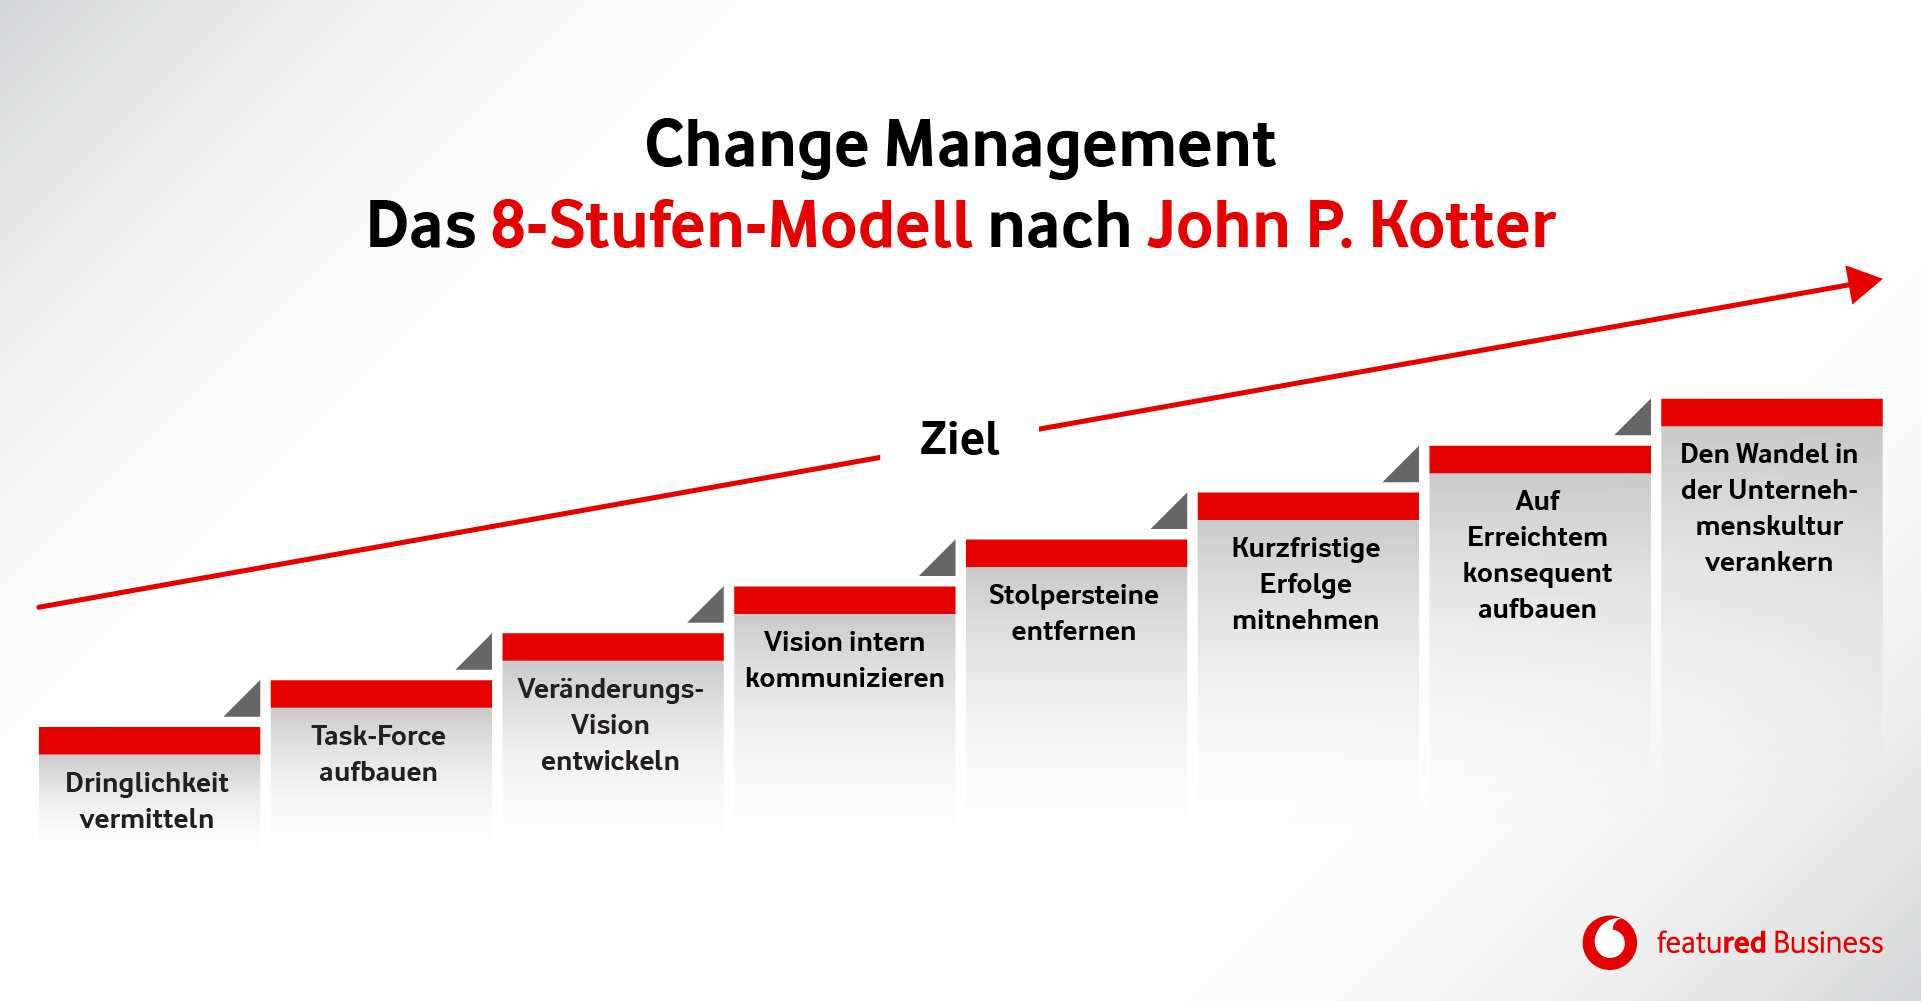 Change Management Definition Und Methoden Fur Veranderungen